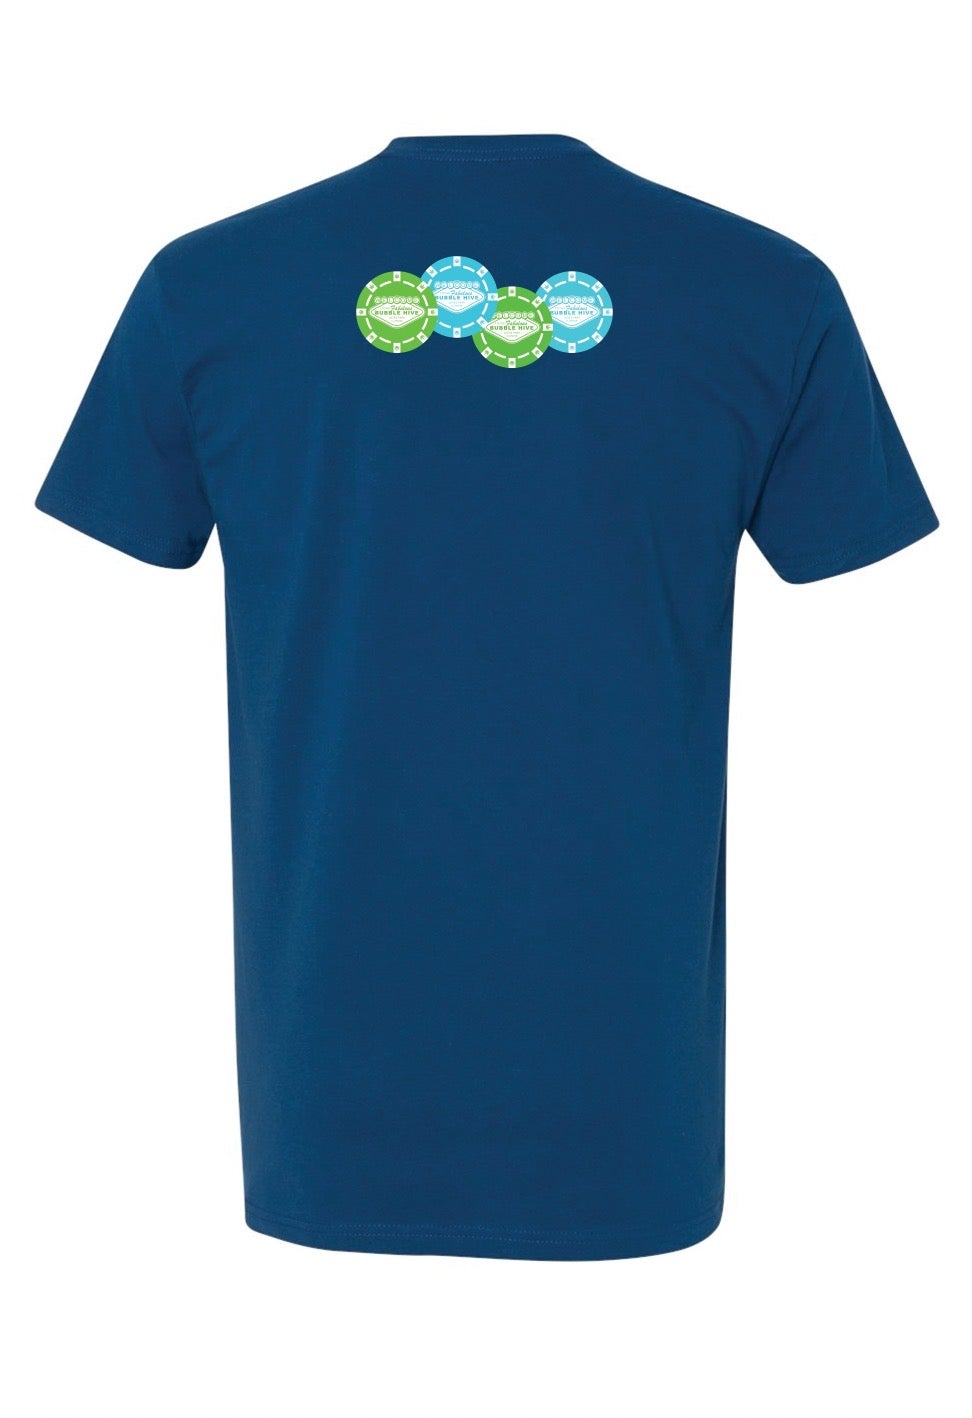 Image of The Bubble Hive x Vegas Tee (Blue) Free Shipping